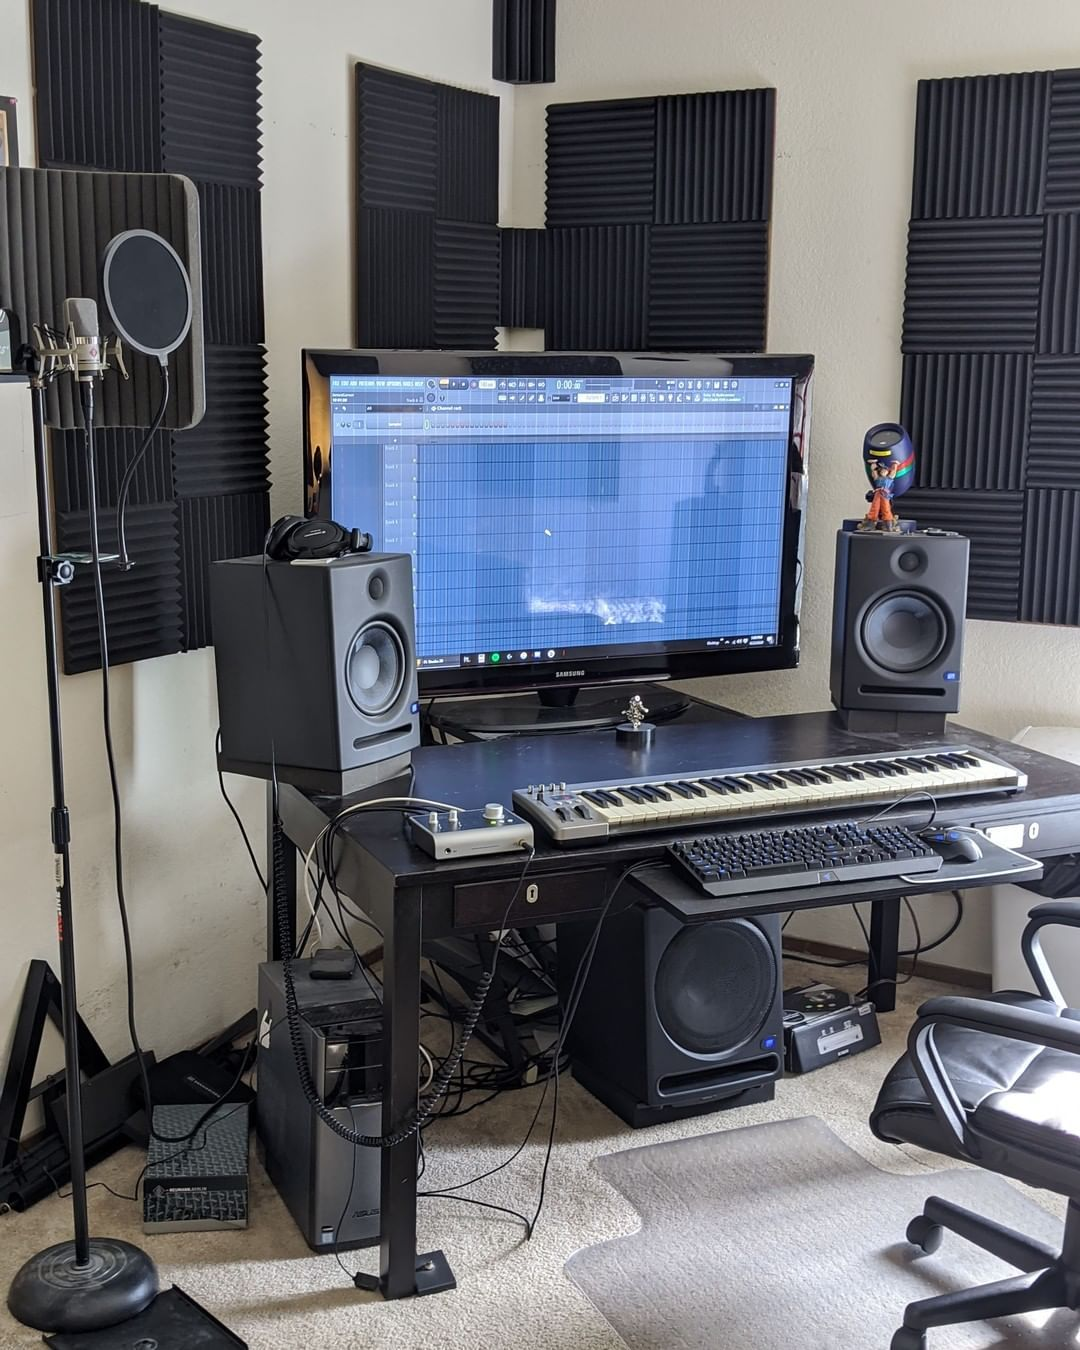 Homestudiohub Posted To Instagram Yunng Yames Makes Rap Instrumentals And Records Voca Music Studio Room Home Recording Studio Setup Recording Studio Design Bedroom home recording studio